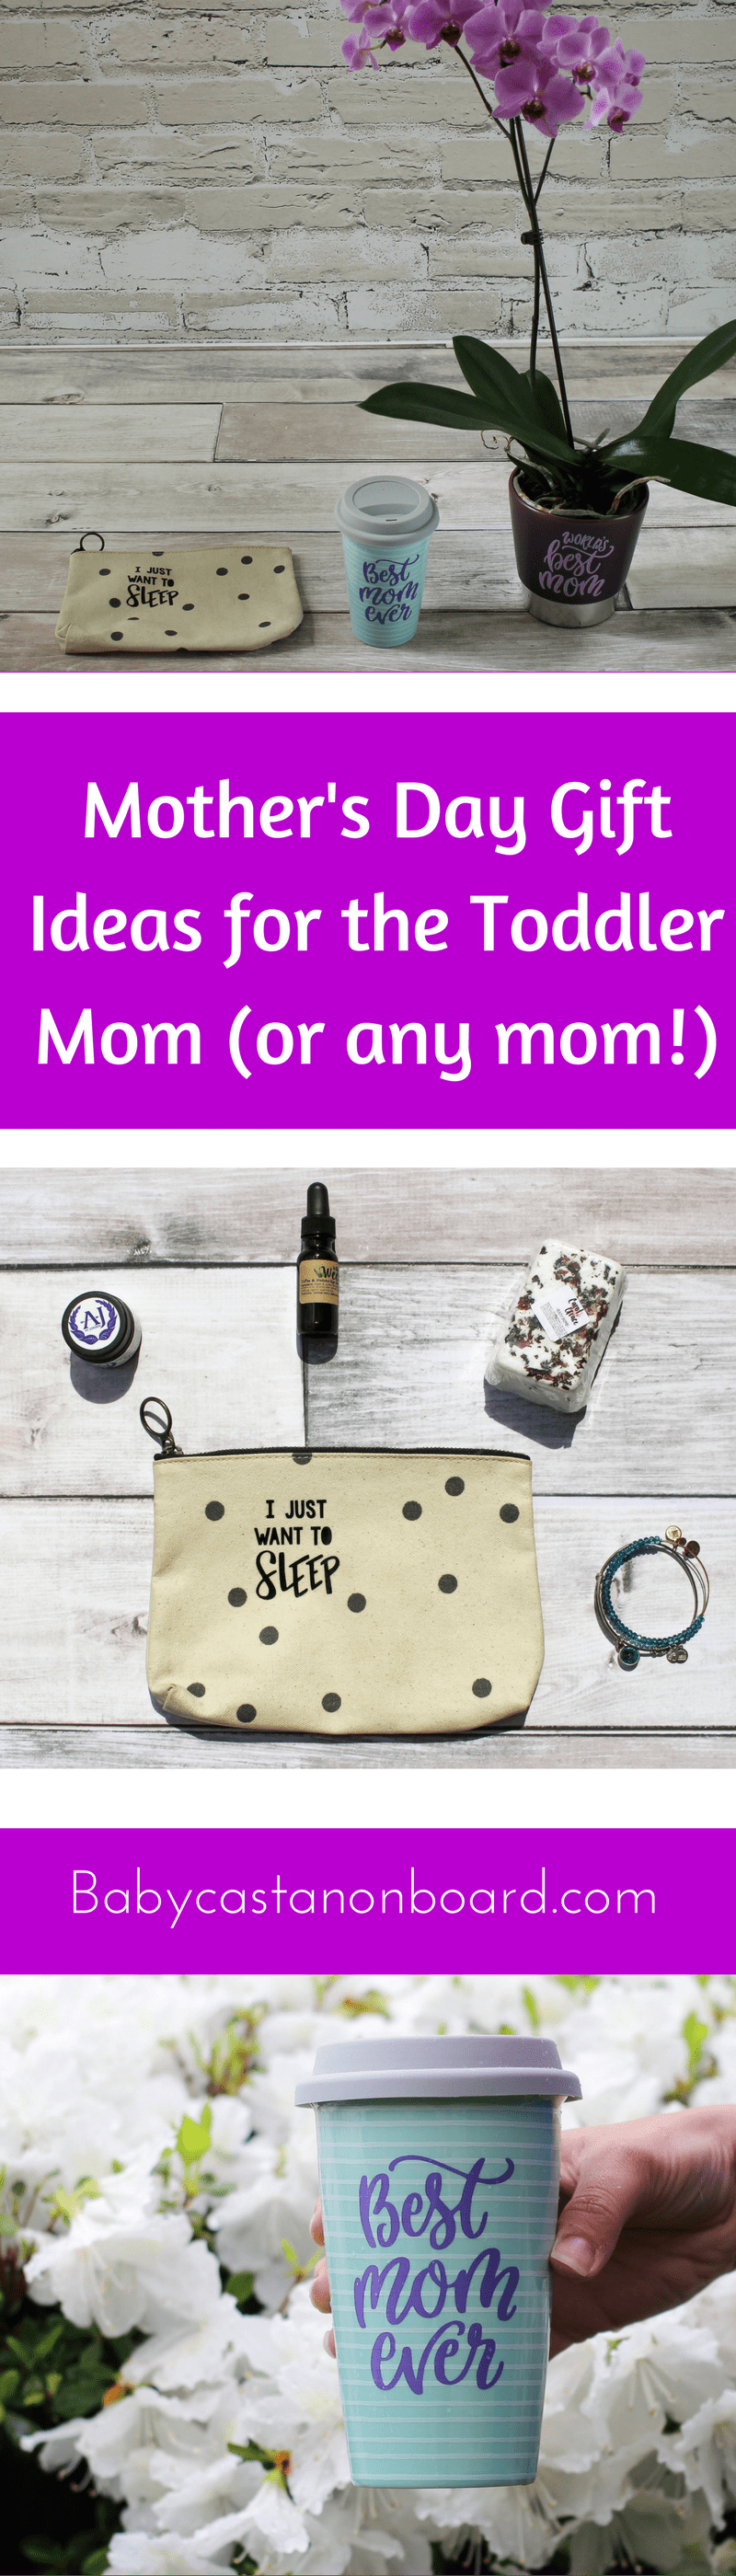 Mother's Day is right around the corner. Here are some fun gift ideas for the baby or toddler mama (or, really, any mama!)